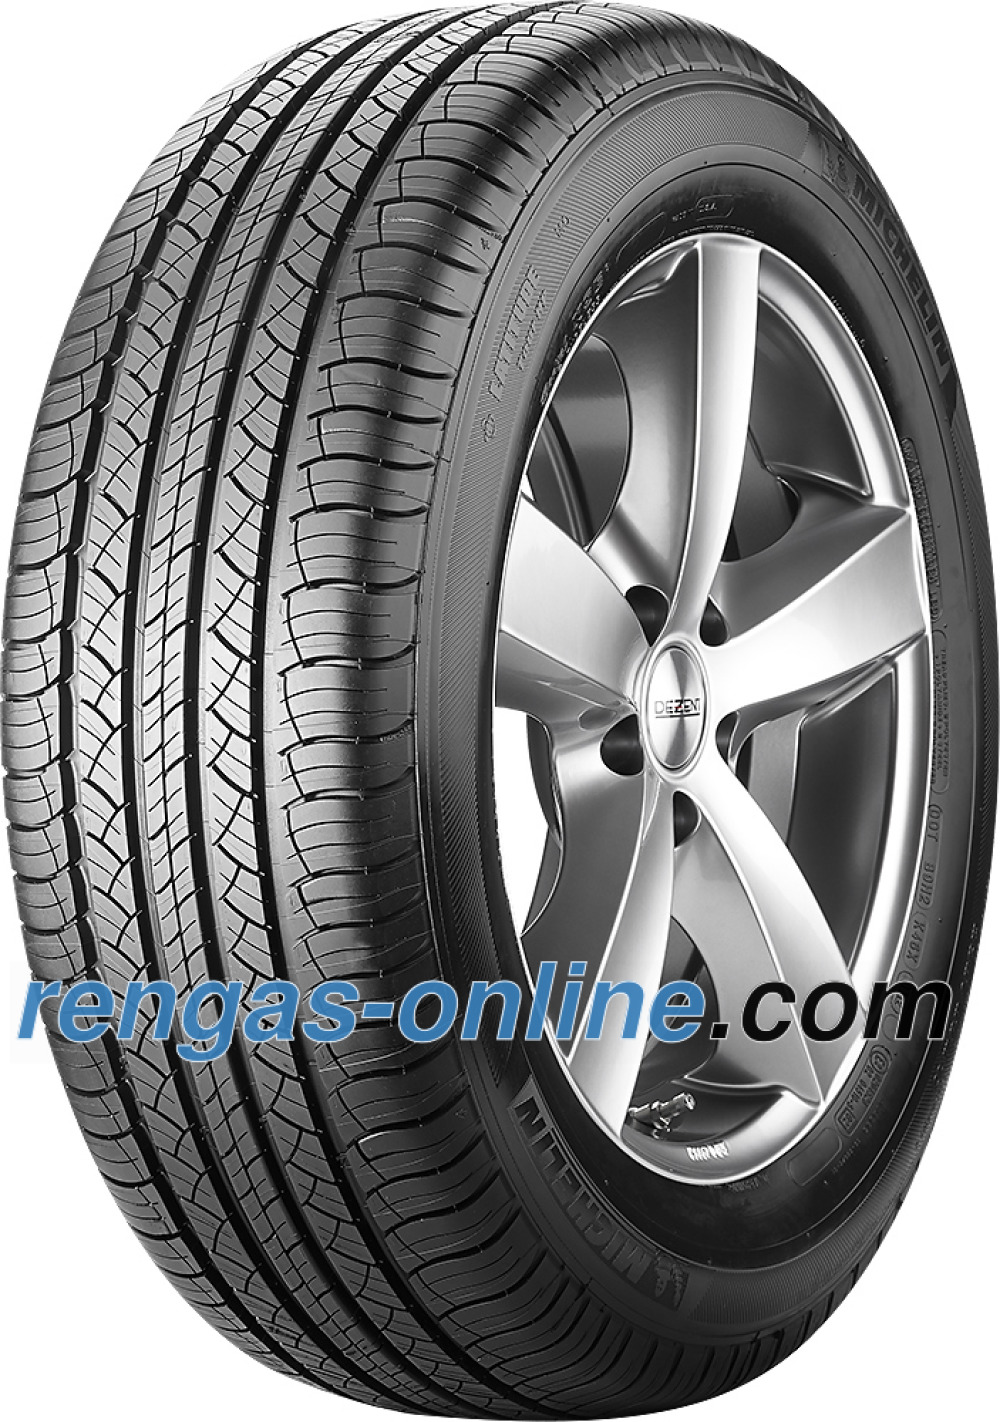 michelin-latitude-tour-hp-p26560-r18-109h